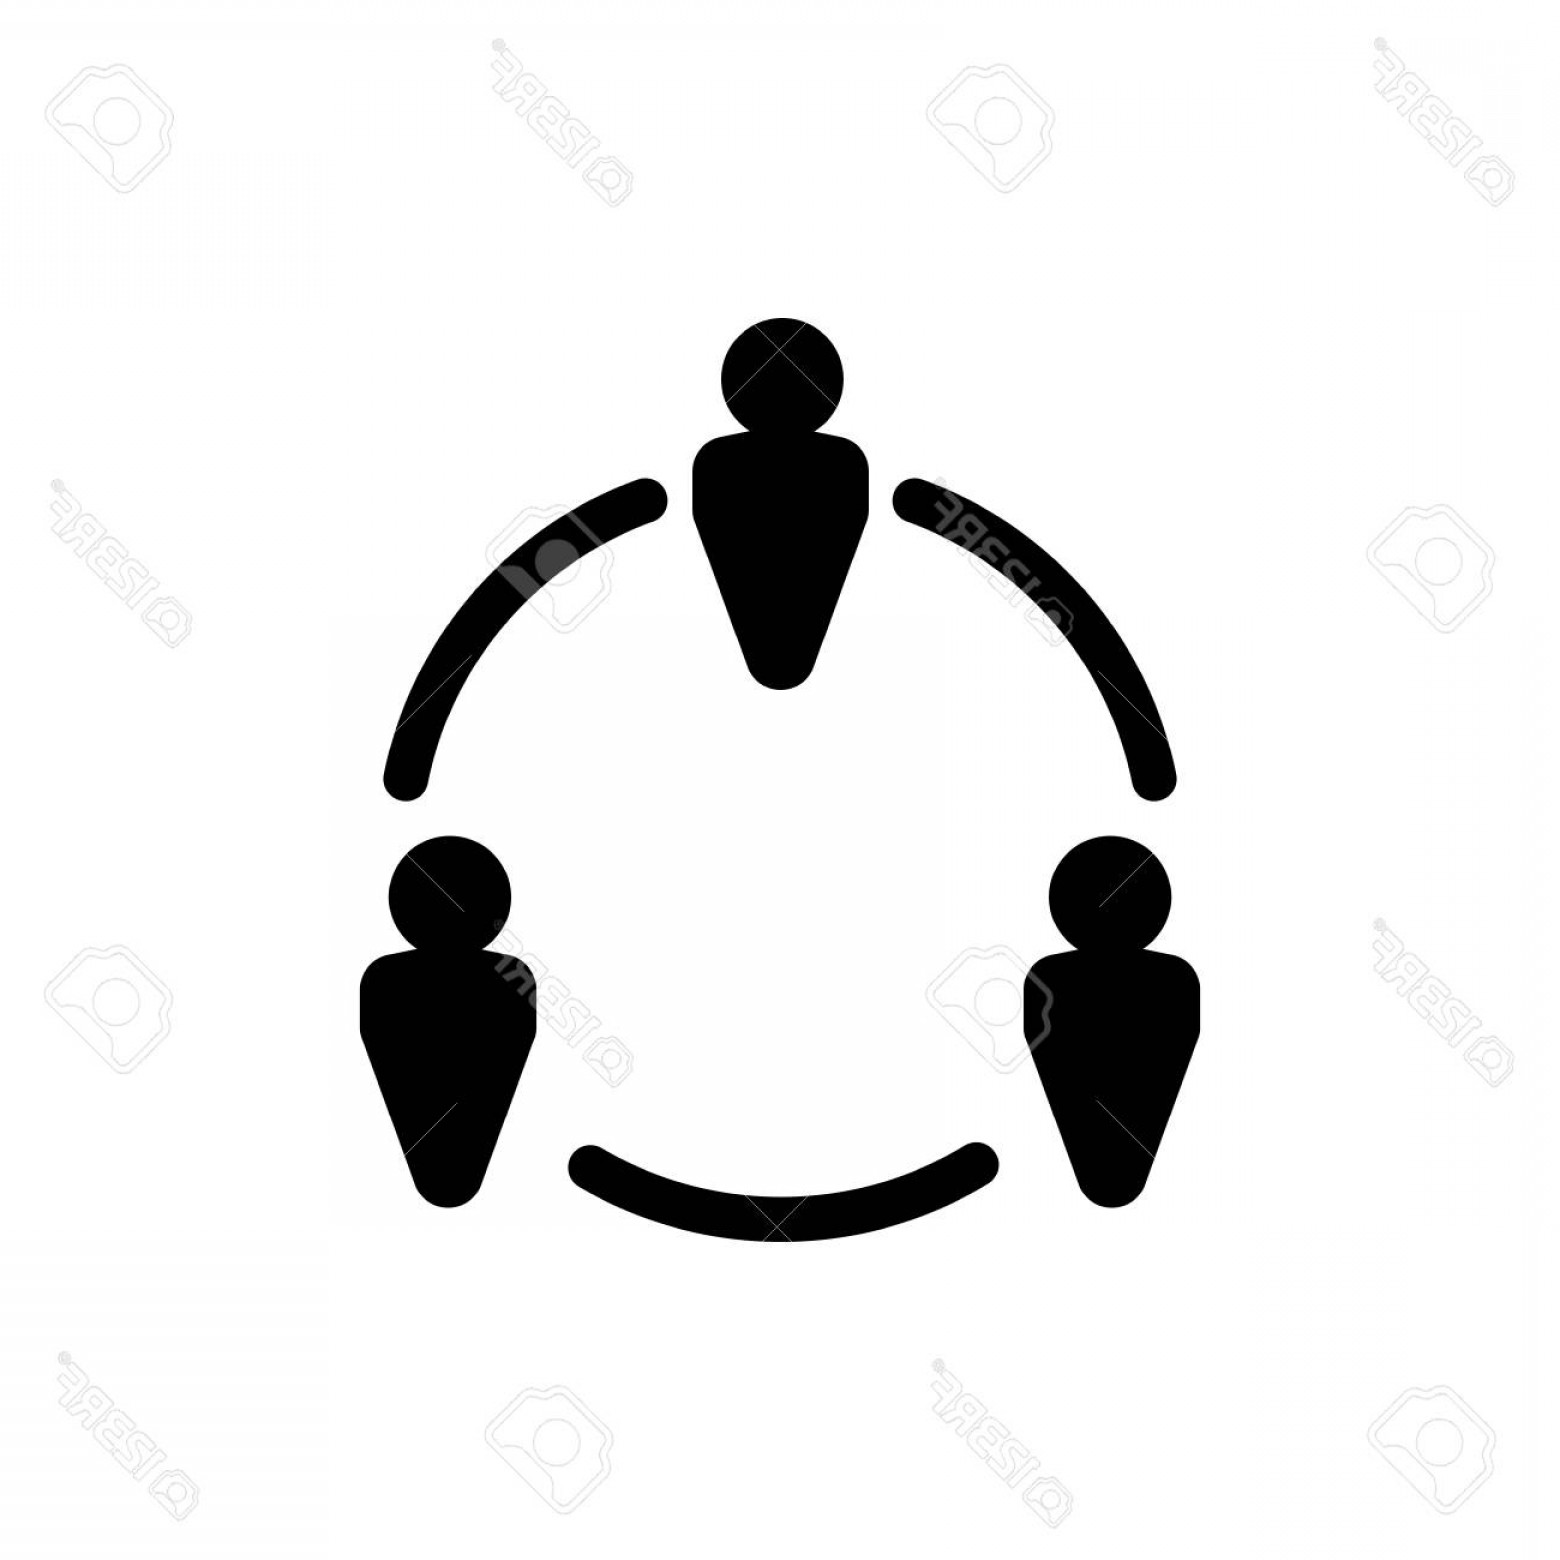 Vector Black And White Organization: Photostock Vector Organization Team Icon In Black And White Illustration